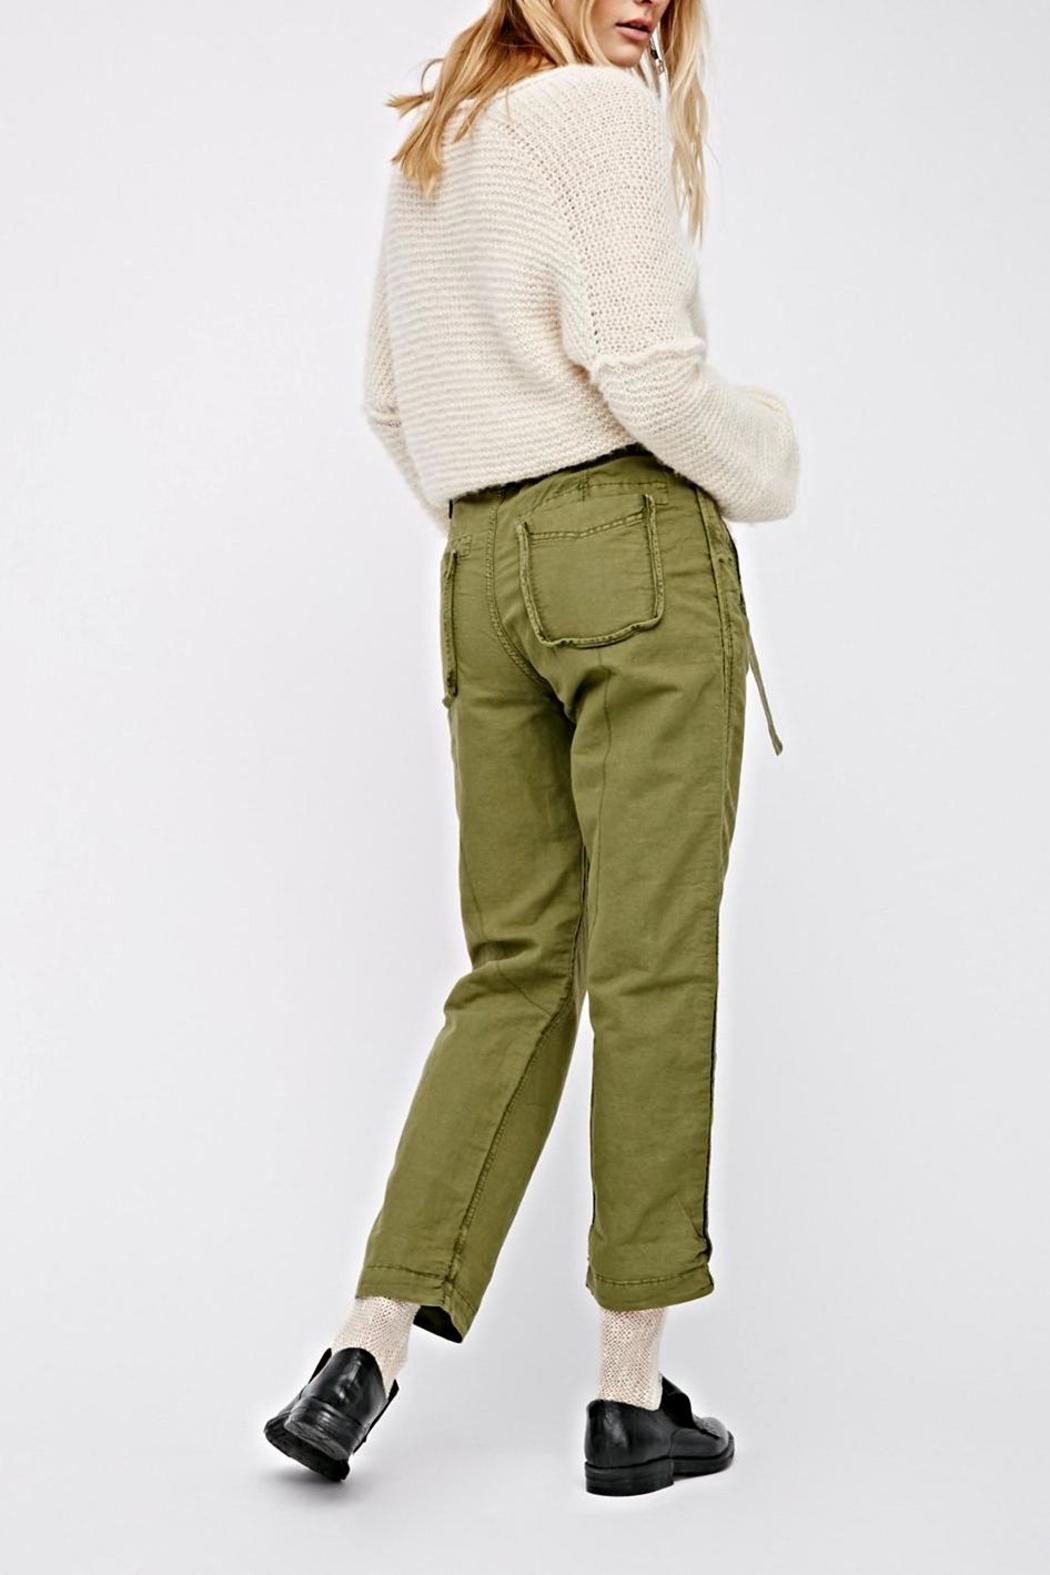 Free People Utility Pant From New Hampshire By Solsistar Shoptiques